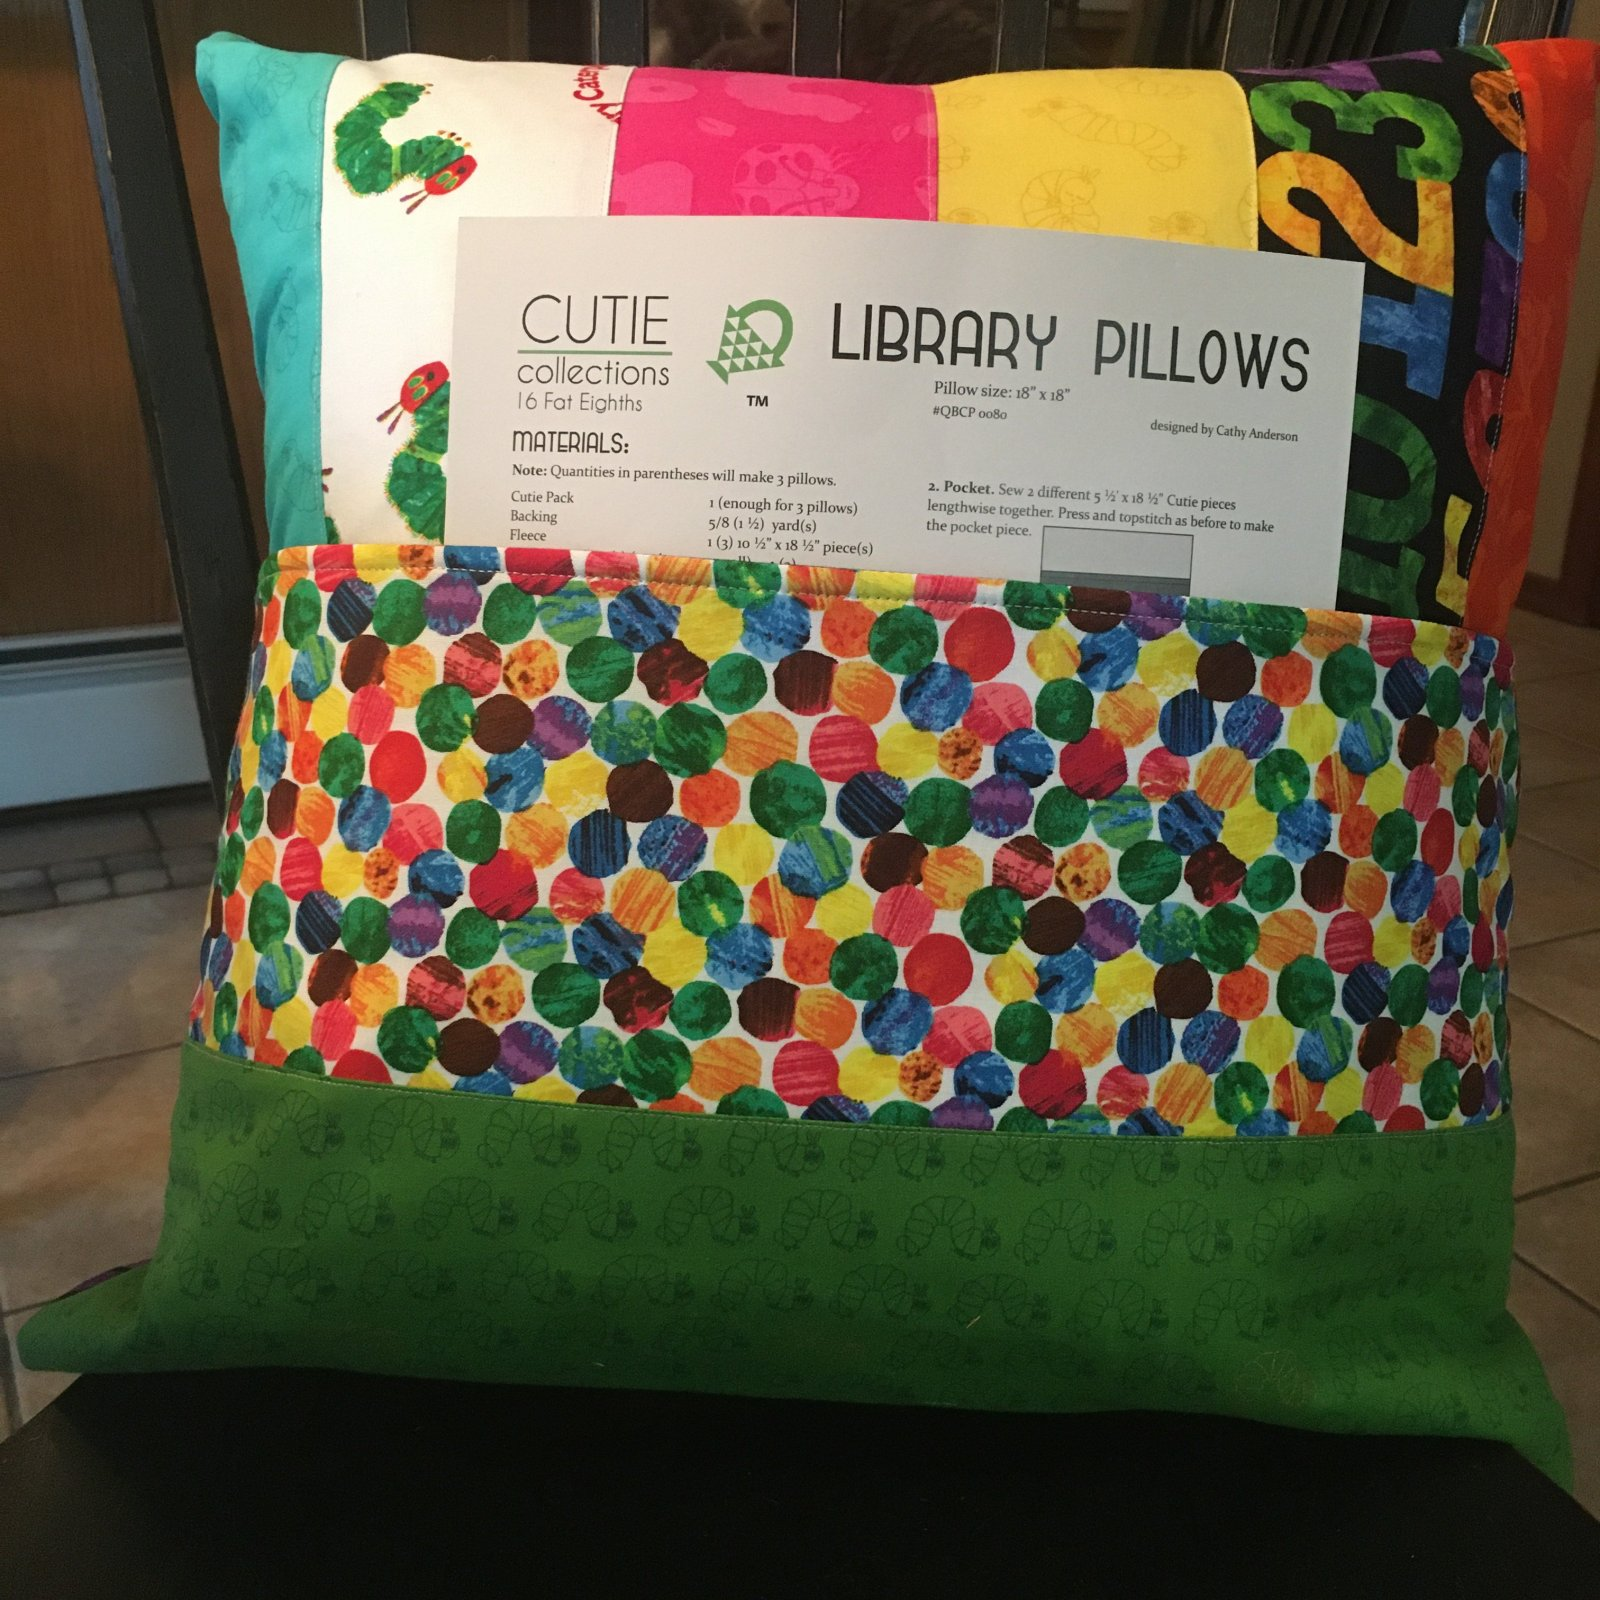 Quilt Basket Library Pillows Kit - The Very Hungry Caterpillar